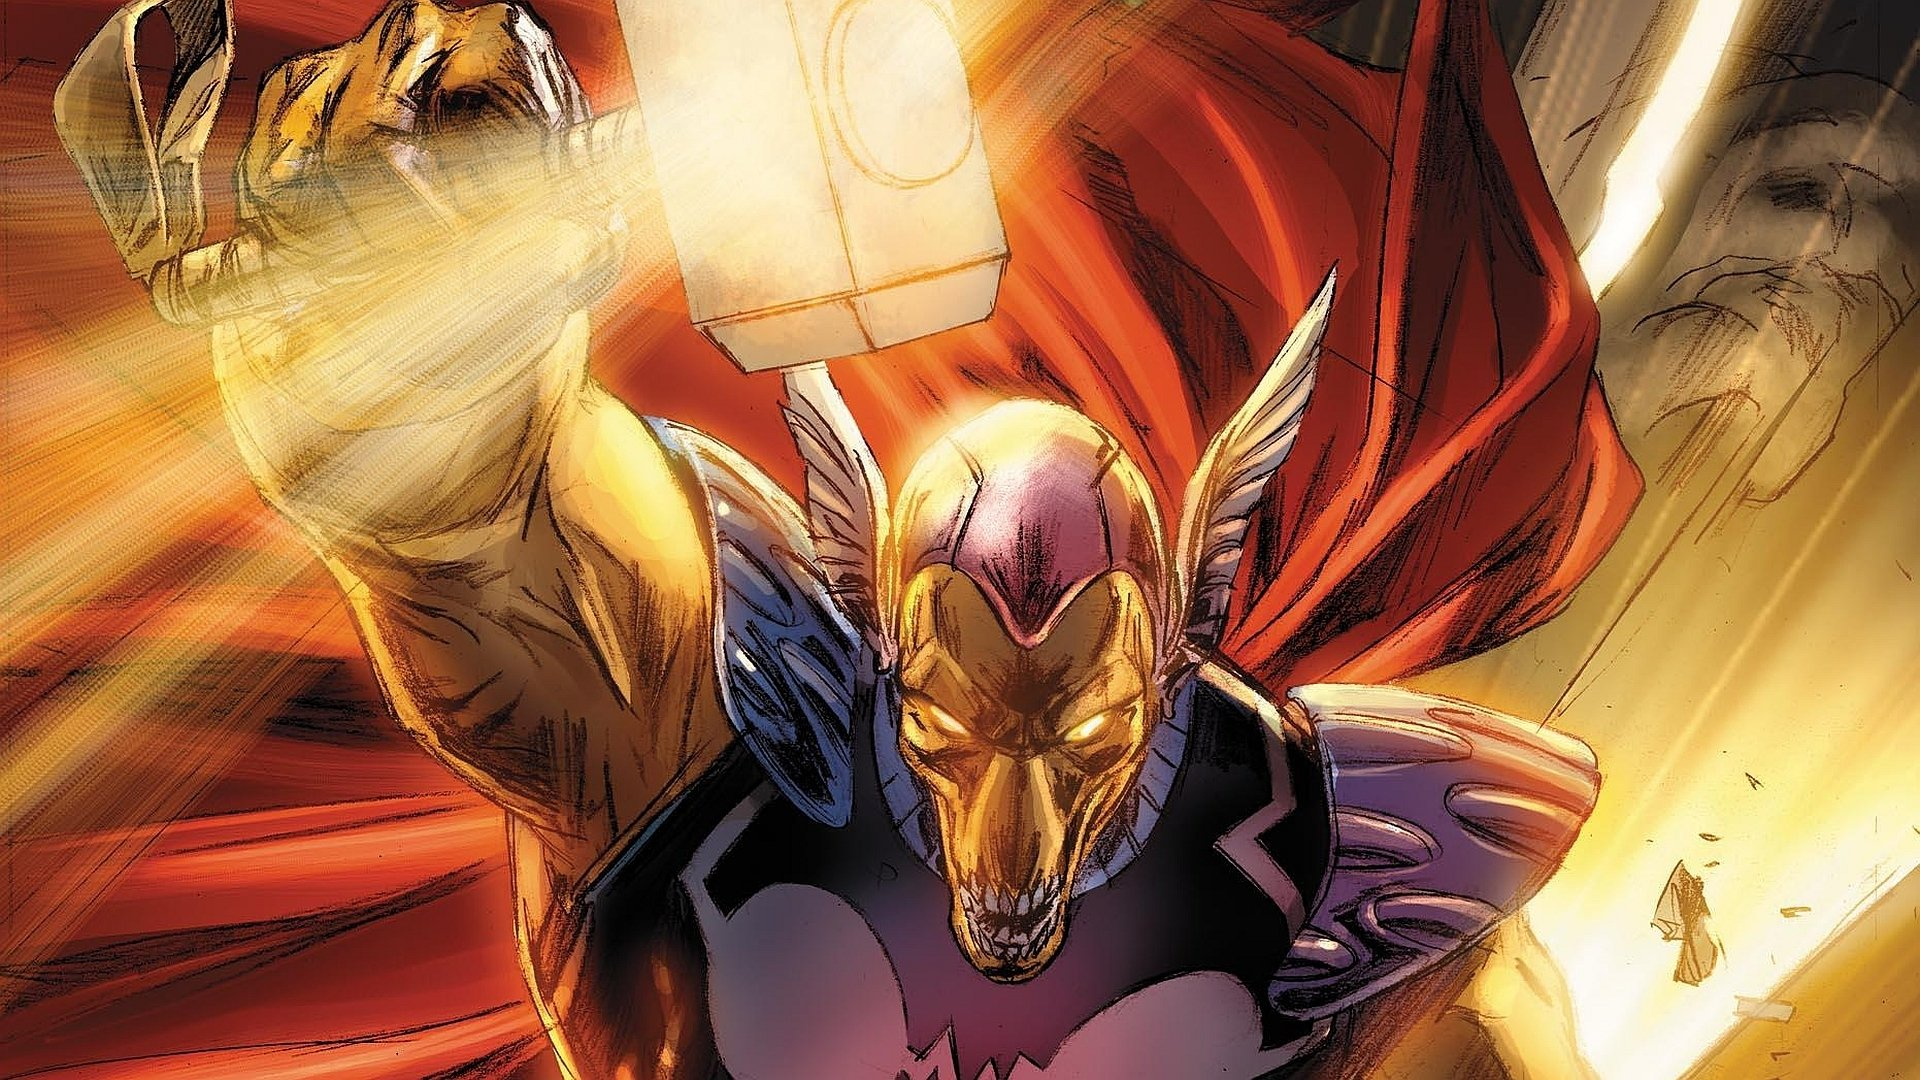 Thor 4 might feature Beta Ray Bill